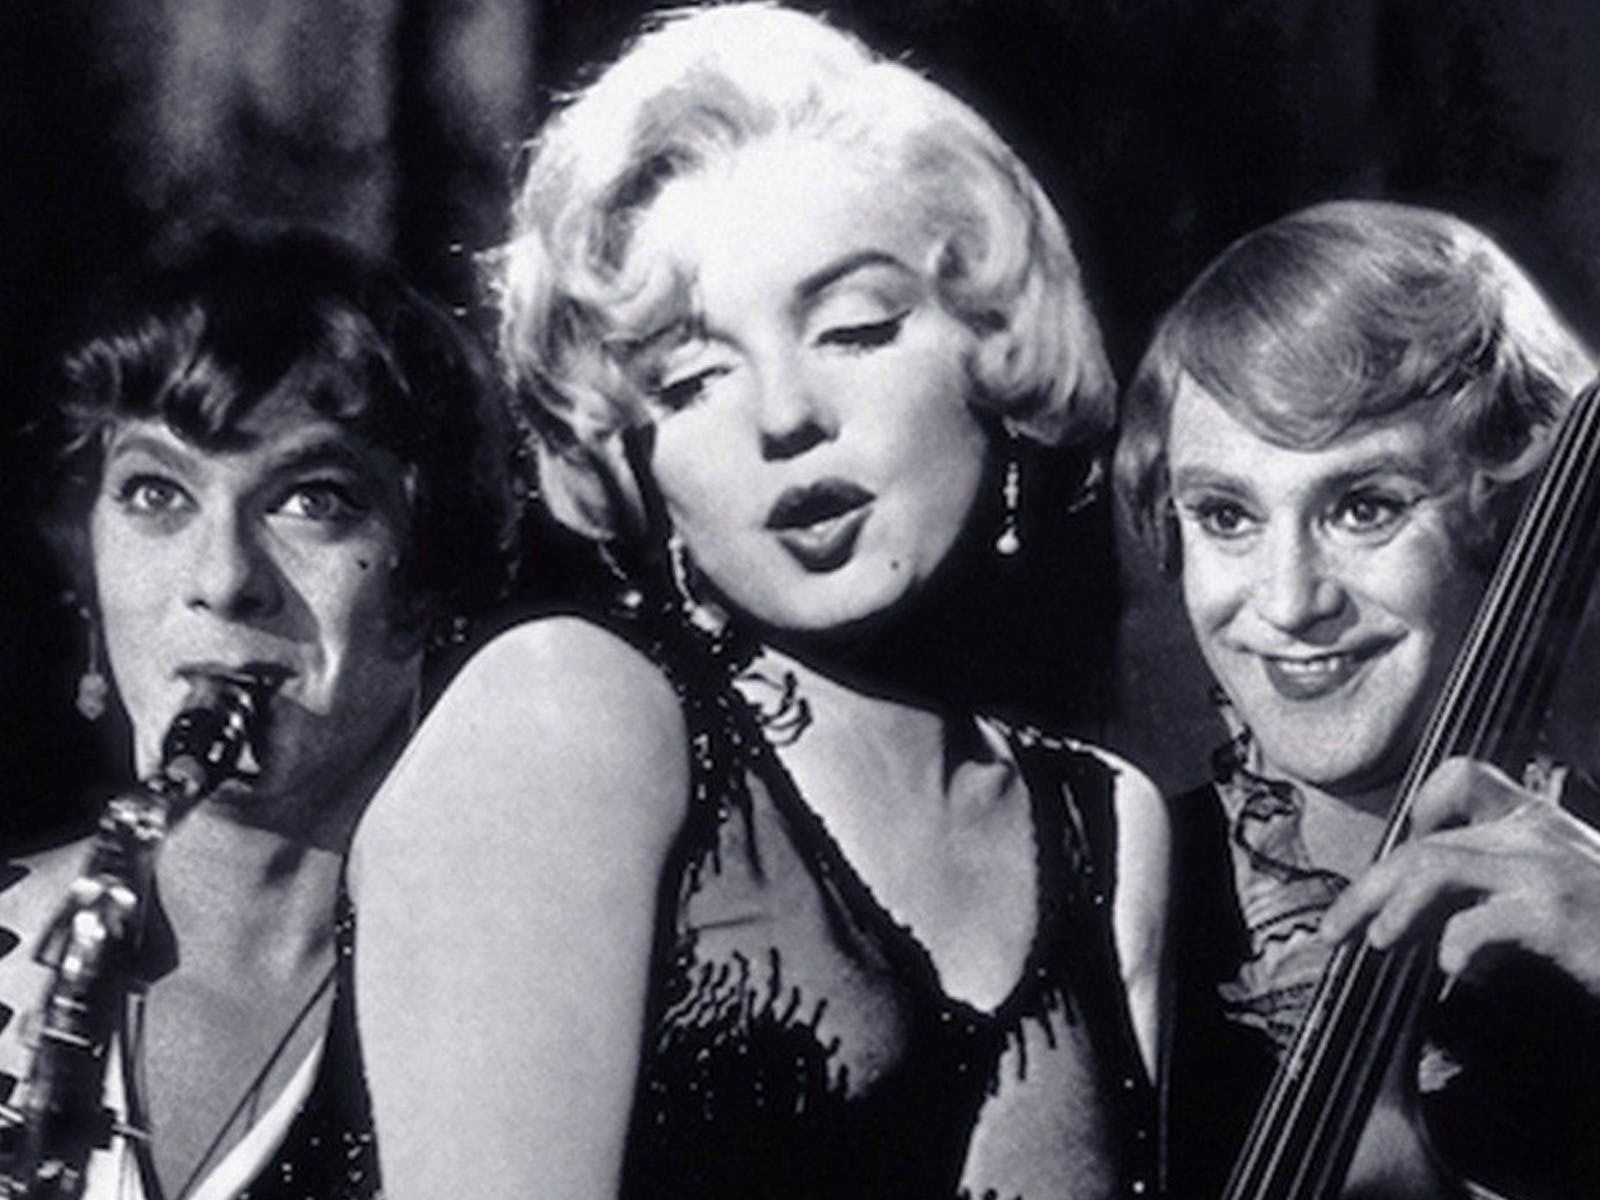 A woman and two men in drag playing instruments